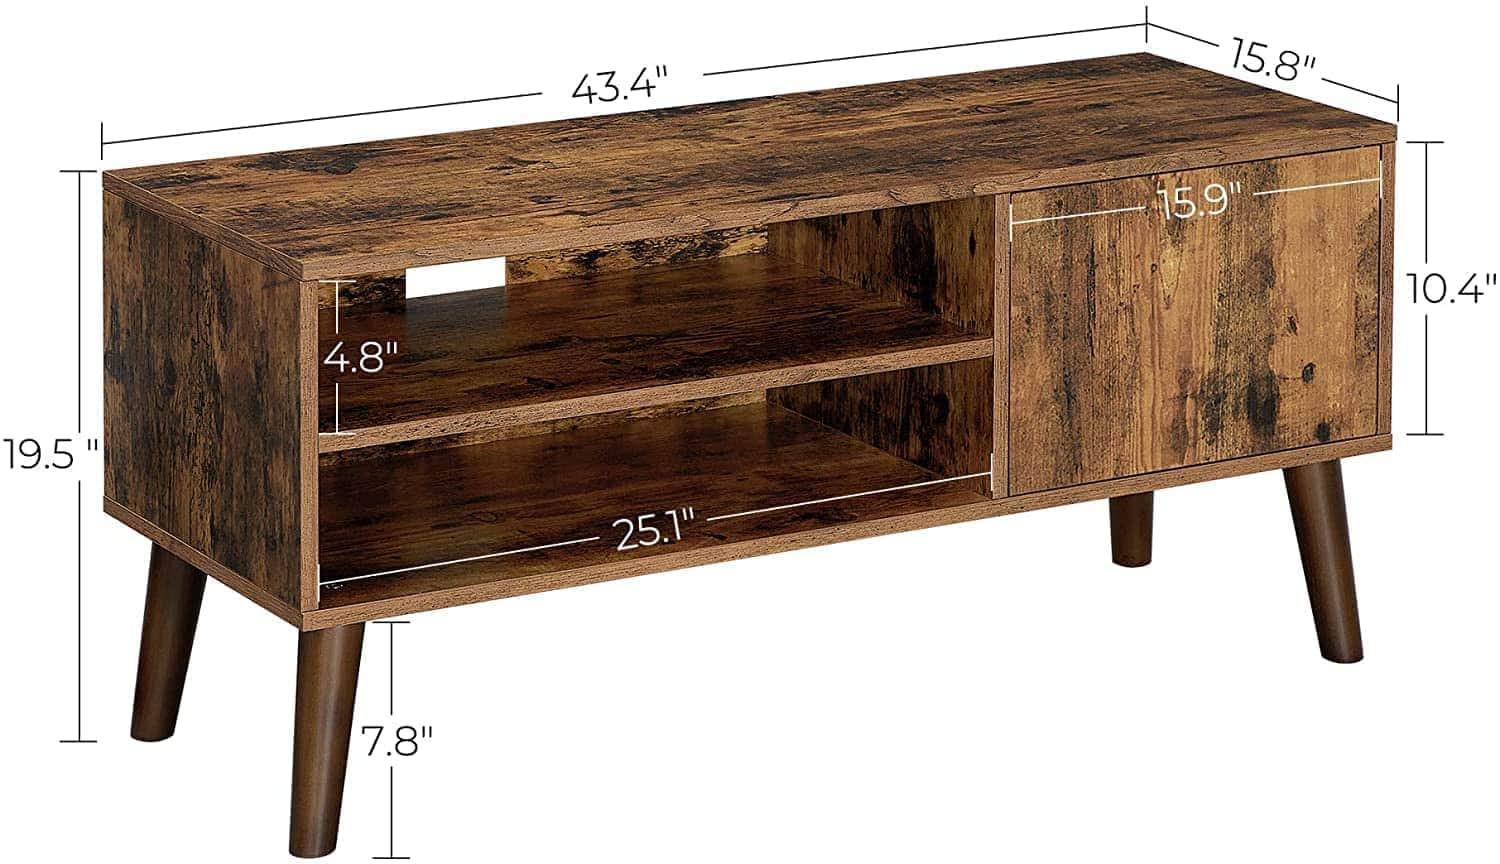 VASAGLE TV Stand for TVs up to 43-Inch (Rustic Brown, Greige, Walnut ) for $69.99 + Free Shipping